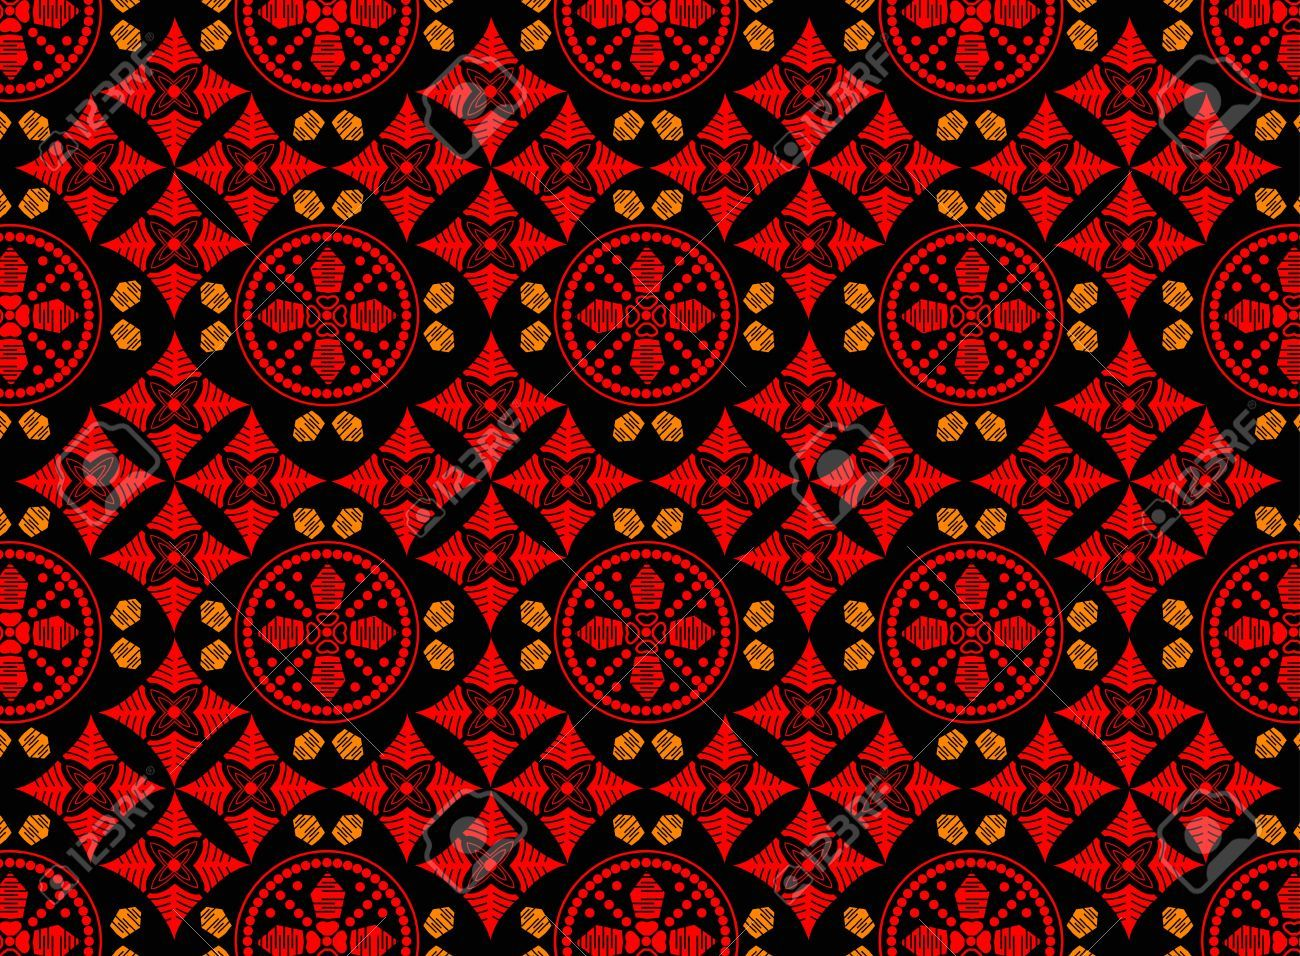 Indonesian Batik Art Royalty Free Cliparts efee9d6542